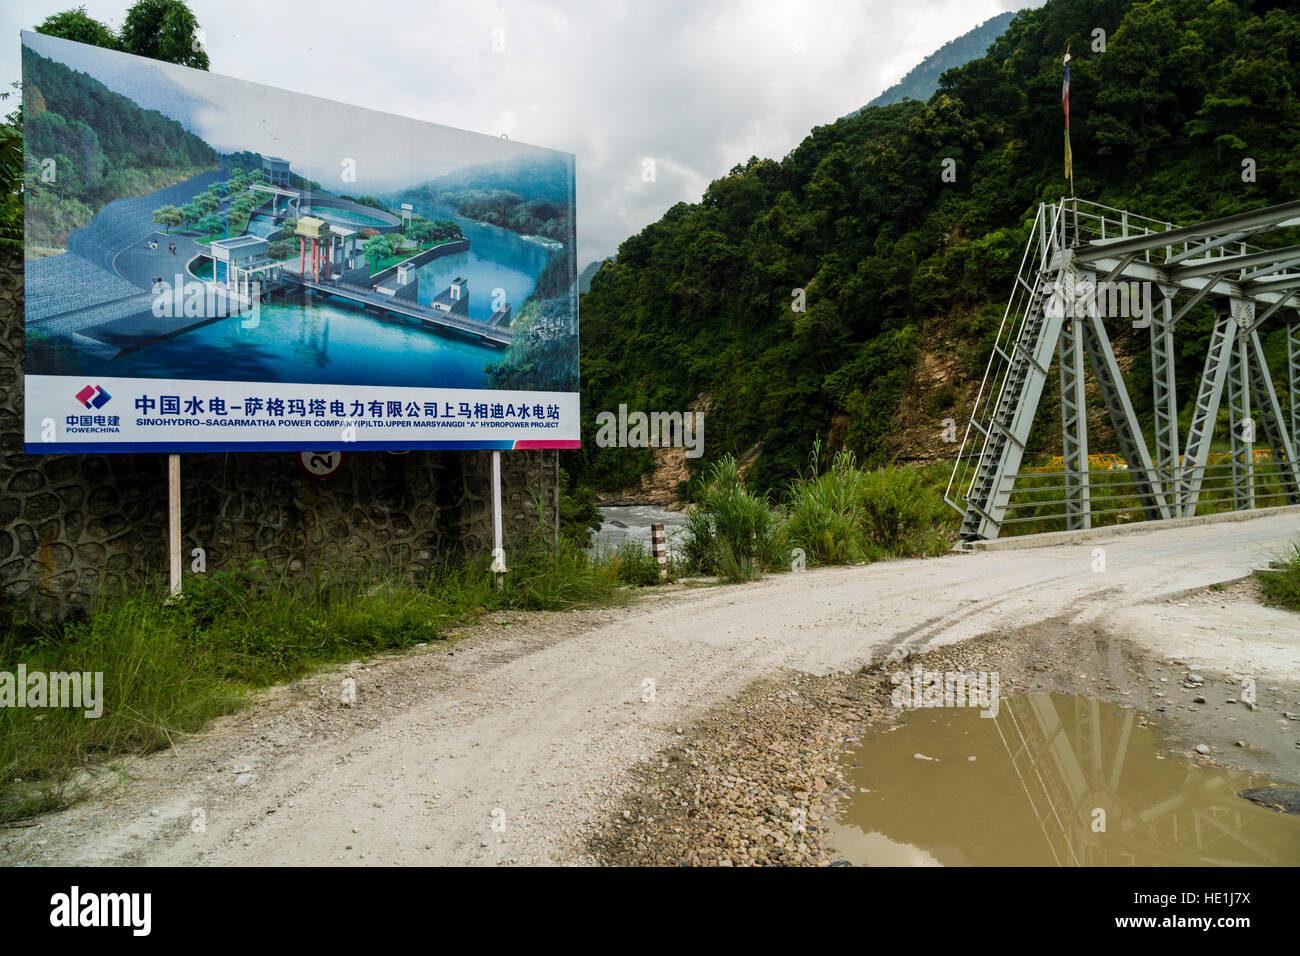 The future appearance of the chinese Upper Marsyangdi hydroelectric powerplant project is displayed on a big signboard - Stock Image